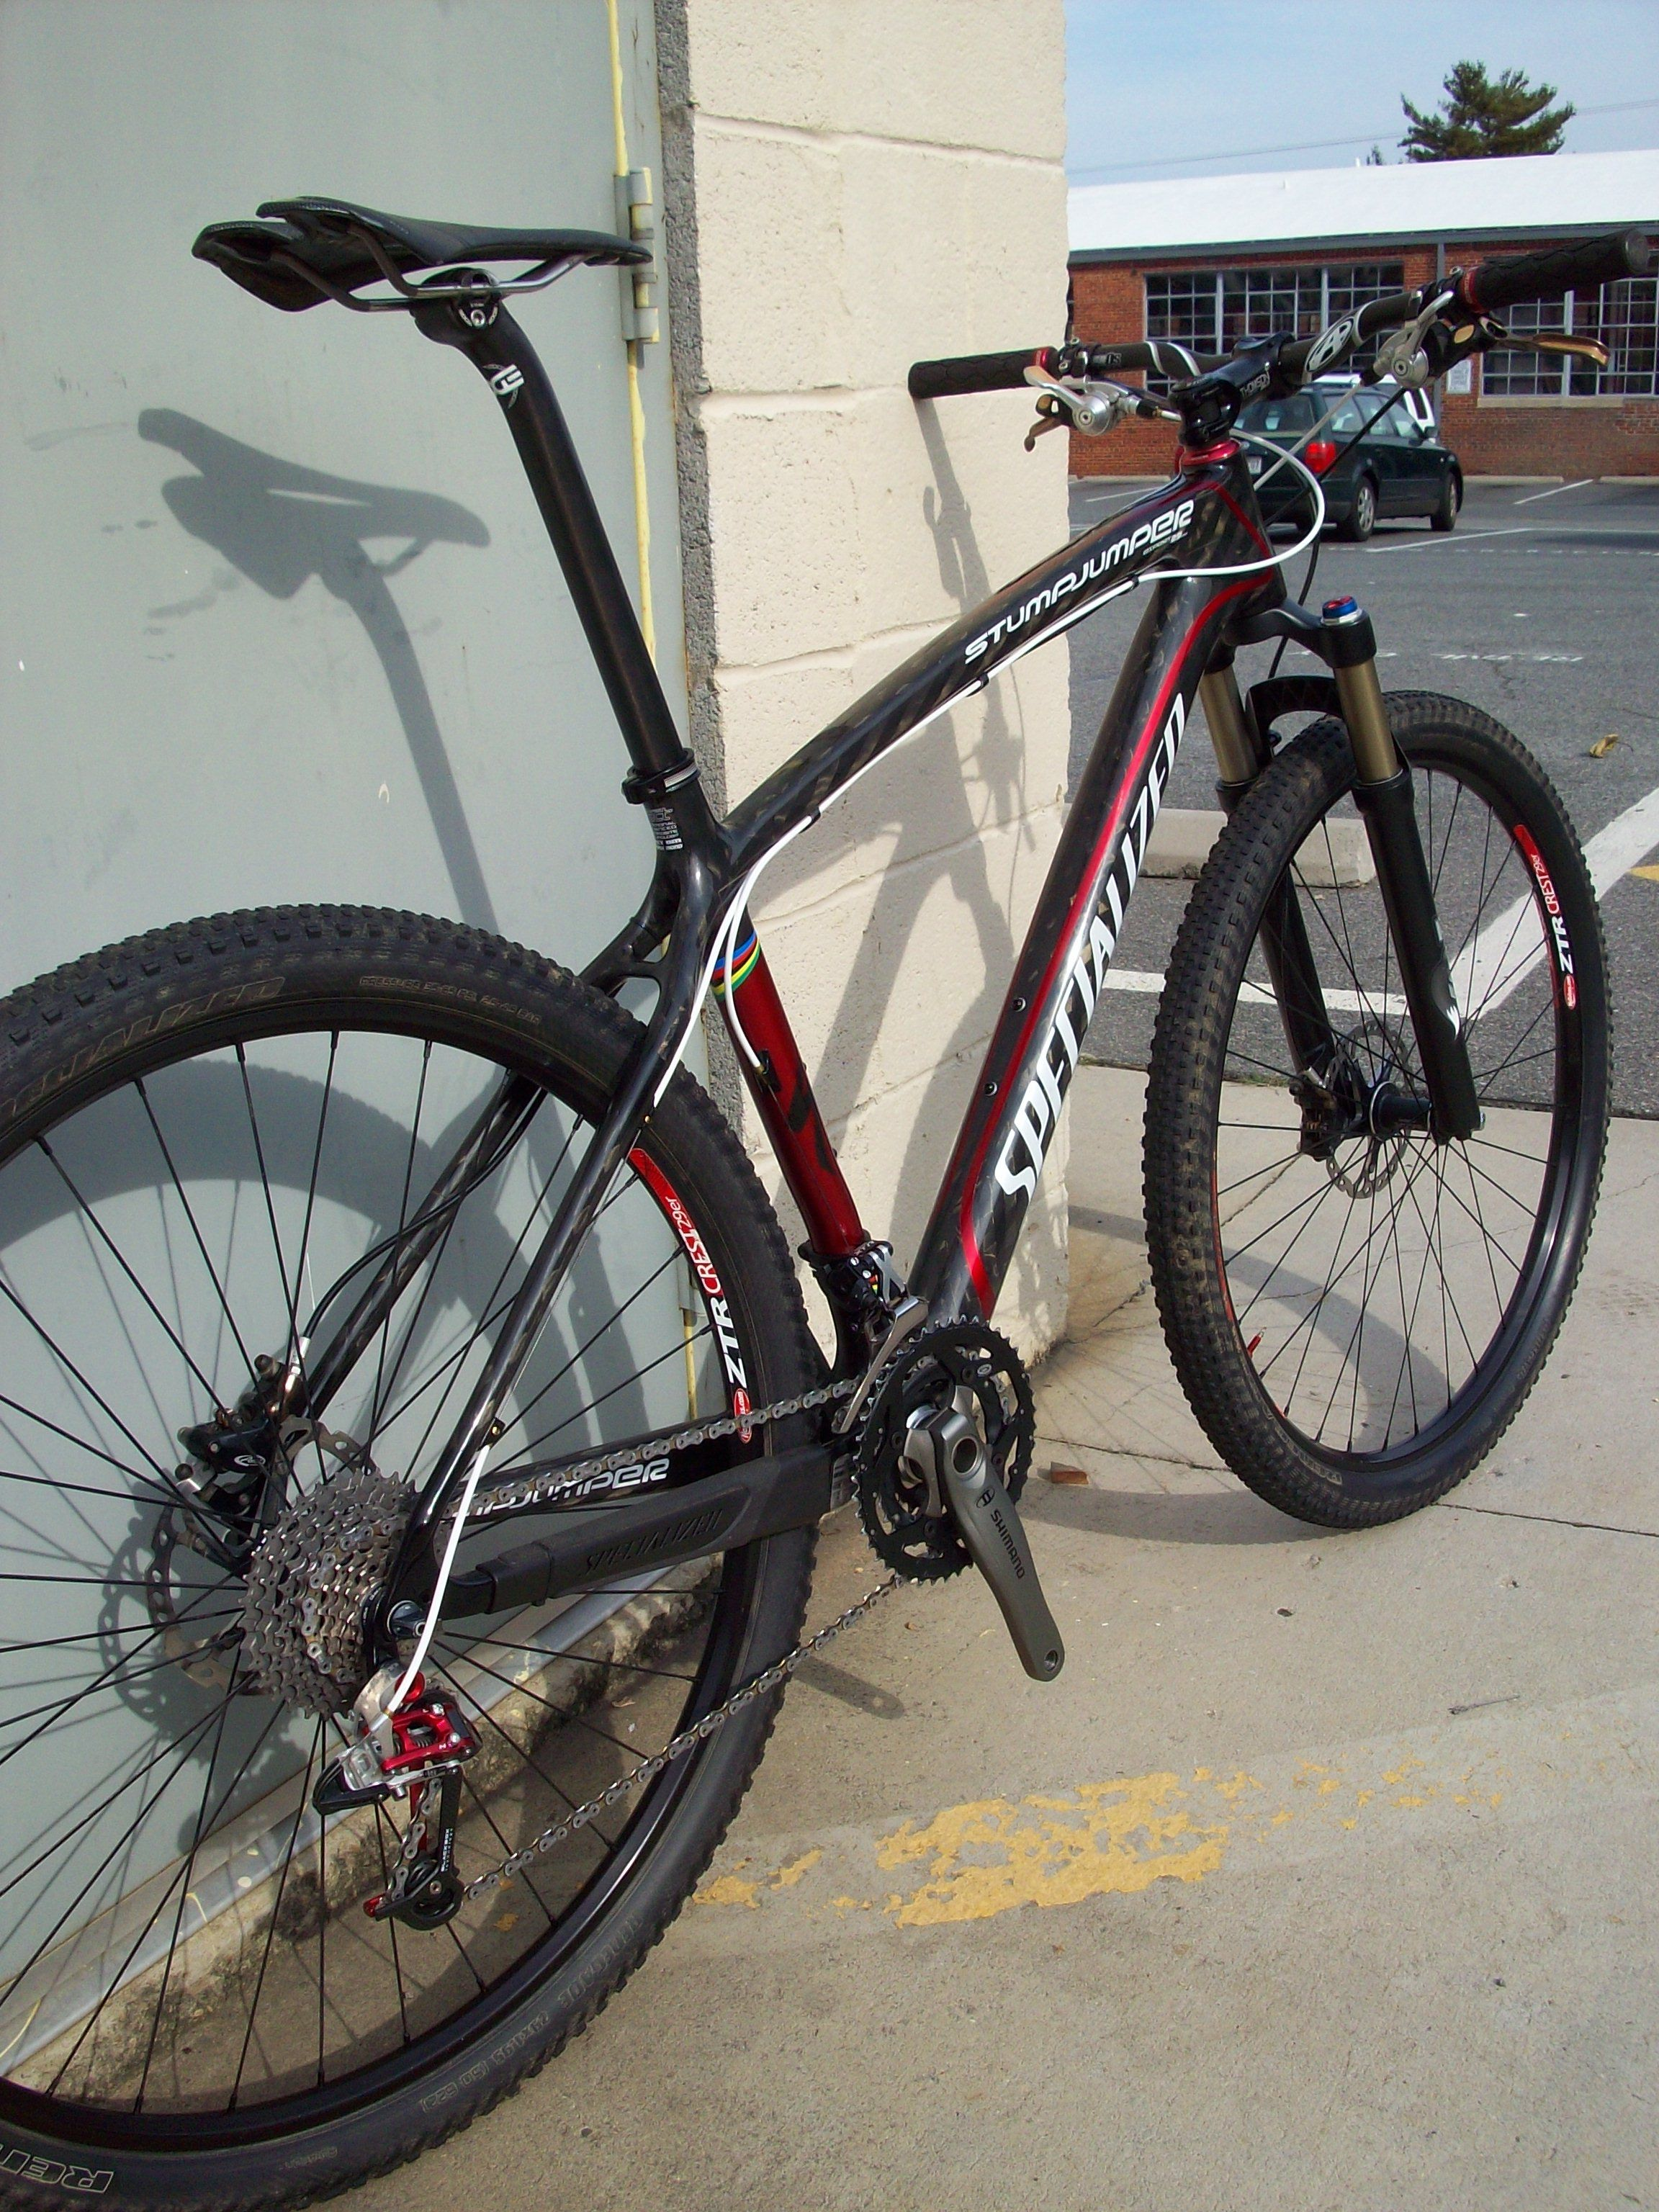 f02be73179a Specialized Stumpjumper HT 29er carbon hardtail, Stan's Crest, SRAM X0,  Edge Composites, Fox F90 RL, Shimano XTR